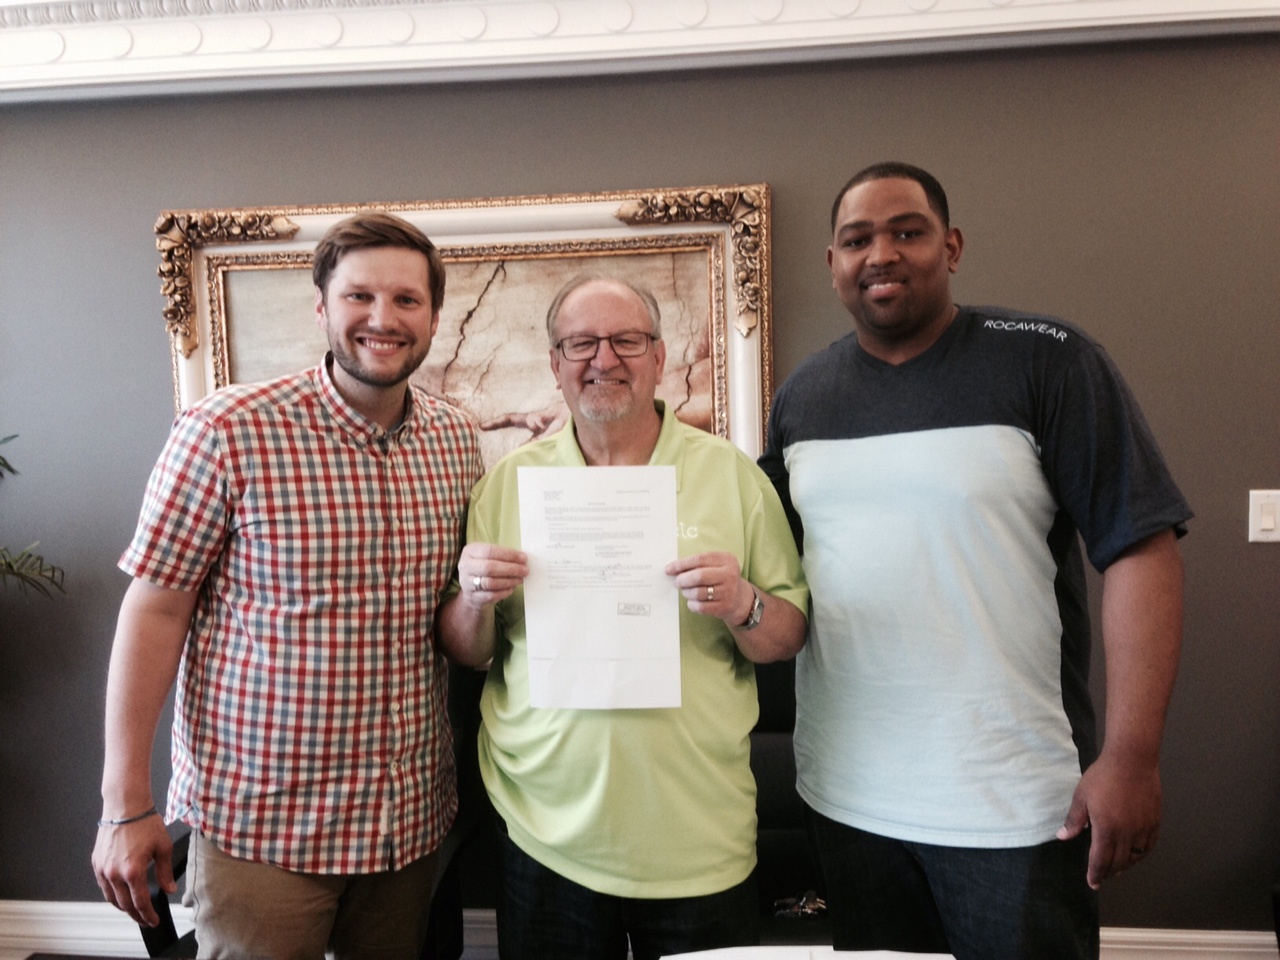 We CLOSED the deal this past Friday, with Pastor Sam & Finance Director Carlton McCarthy & Corporate Secretary Jack Starks (not pictured) joining me with a copy of the deed.